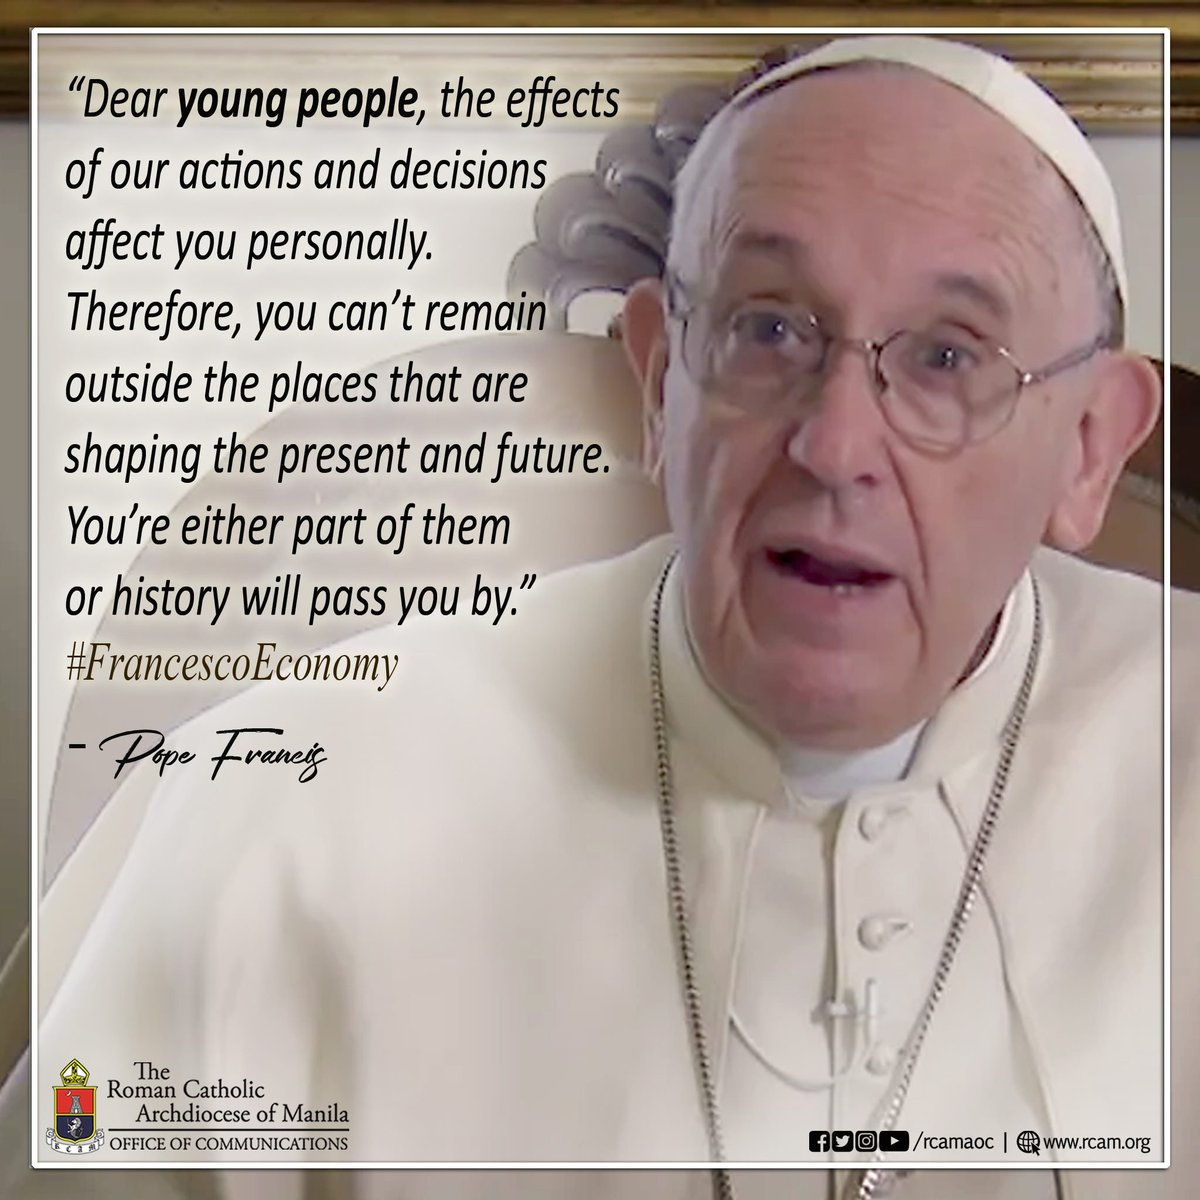 #PopeFrancis on Twitter   Dear young people, the effects of our actions and decisions affect you personally. Therefore, you can't remain outside the places that are shaping the present and future. You're either part of them or history will pass you by. #FrancescoEconomy #rcamaoc